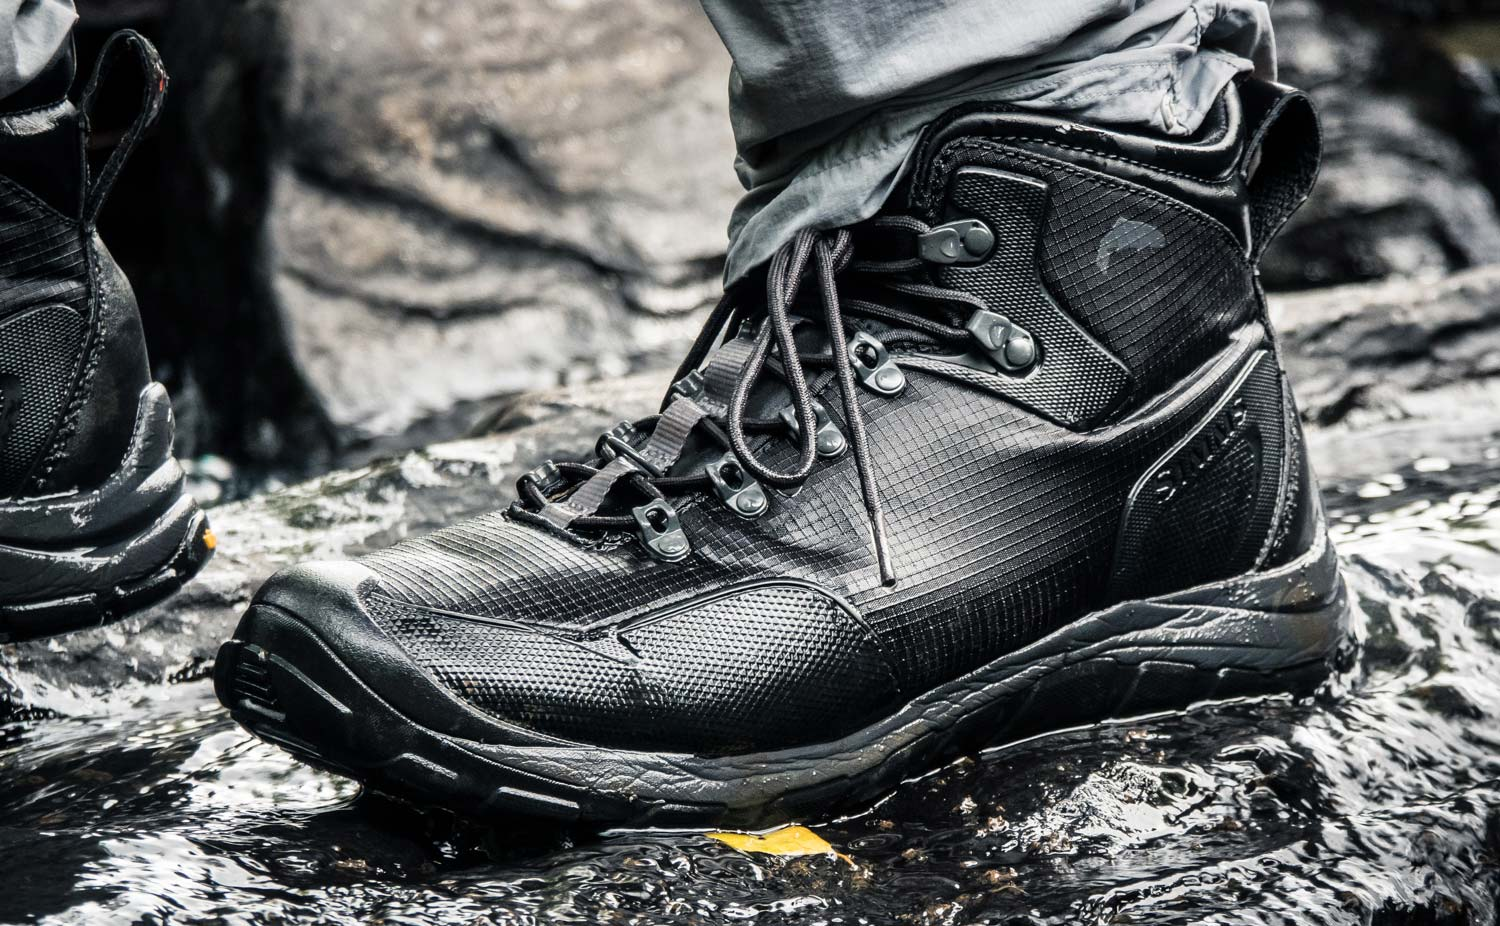 Simms Intruder Boot Review   Fly